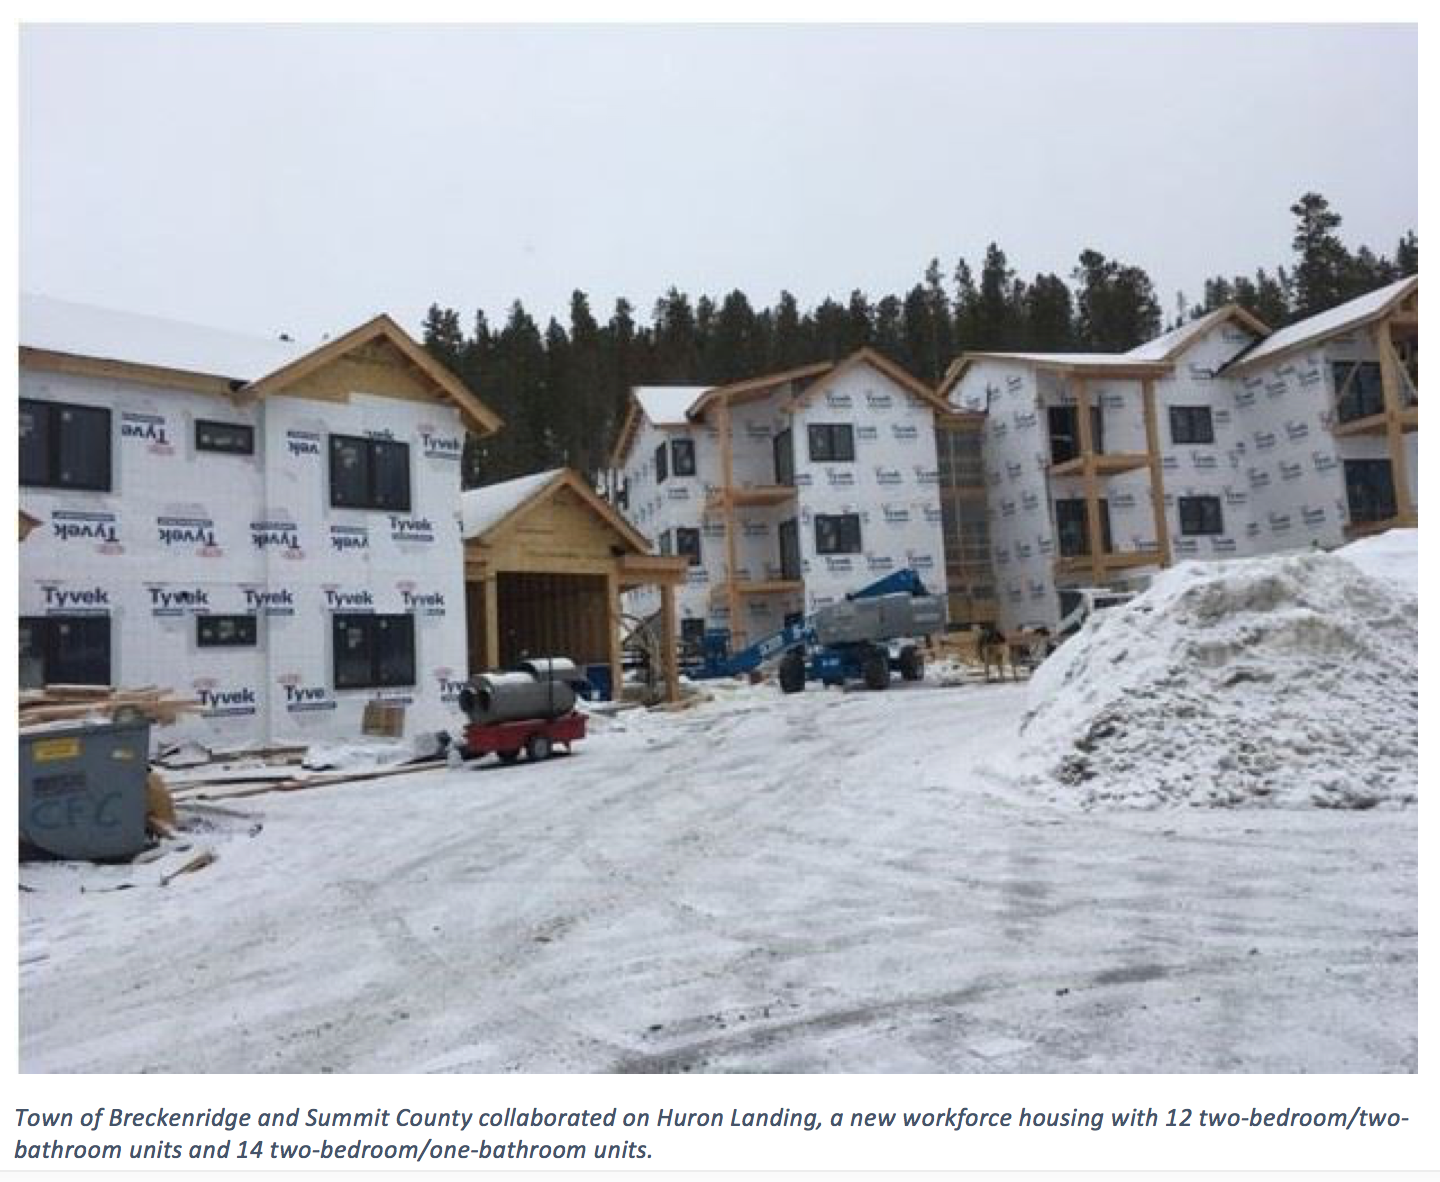 Voters Say Yes to Affordable Housing in Summit County, Colorado